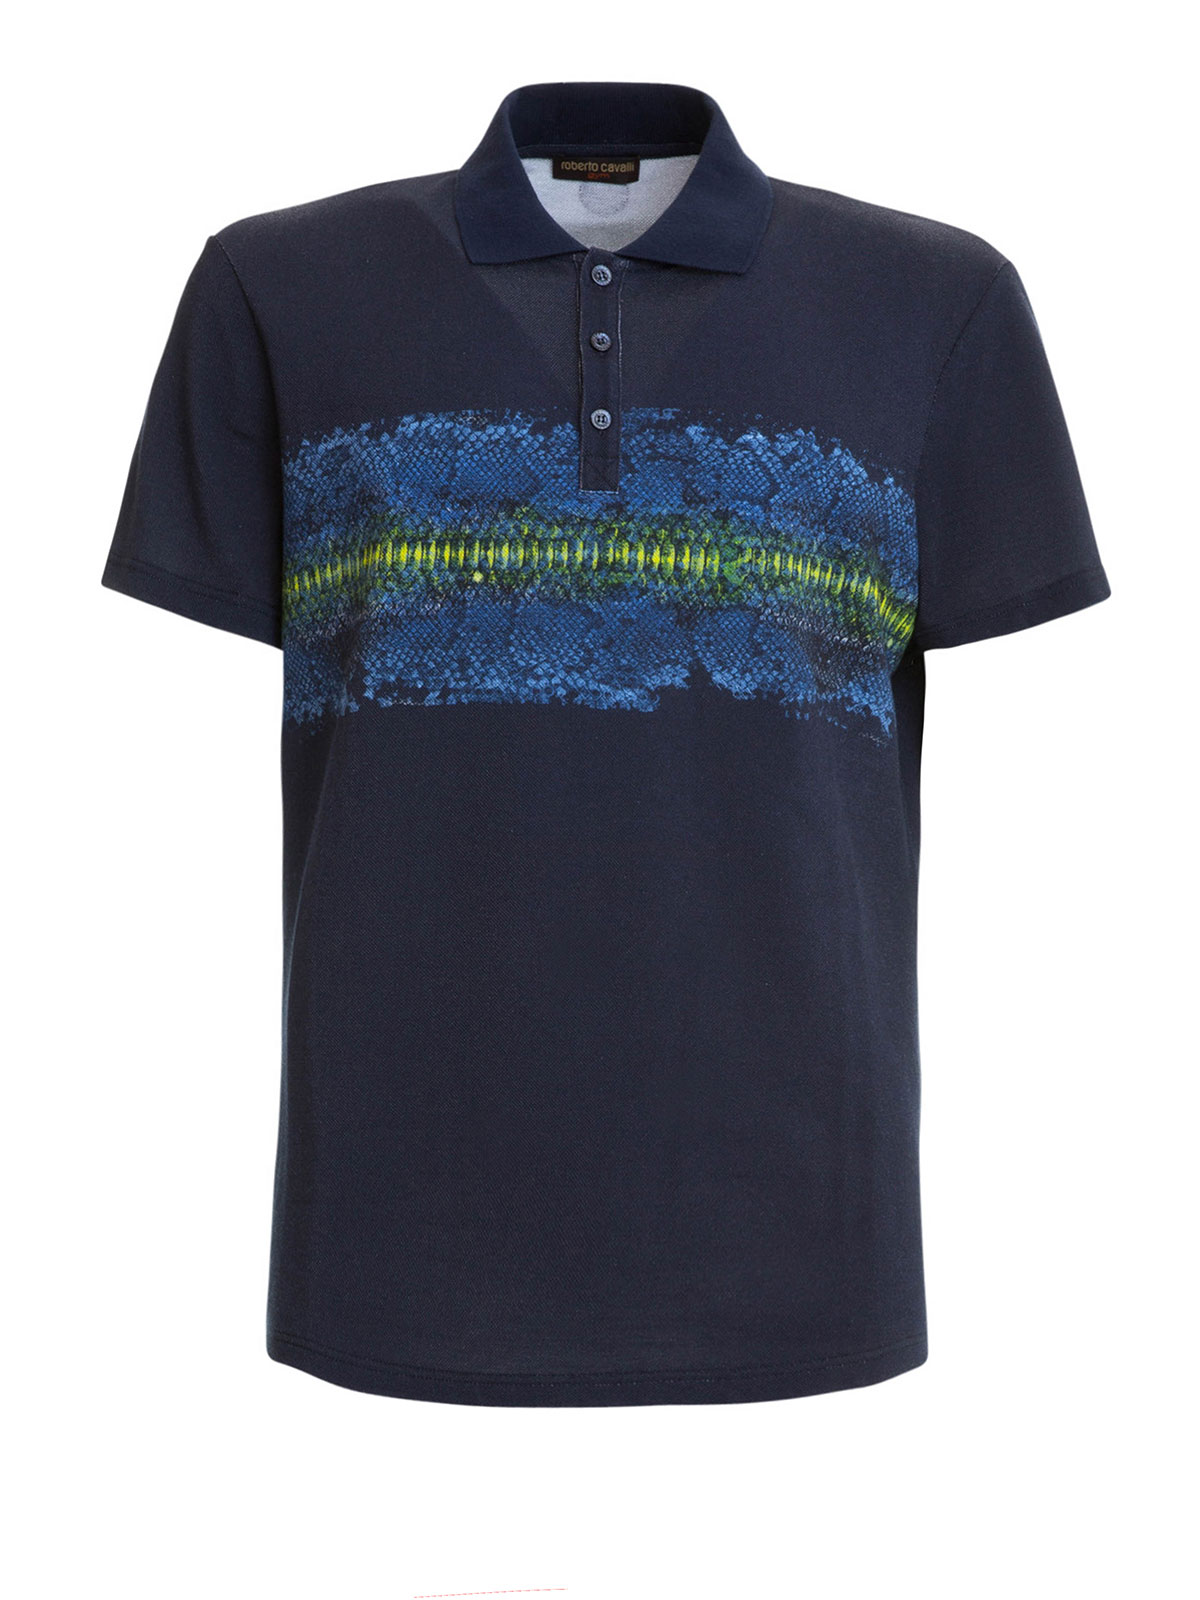 Snake print cotton polo shirt by roberto cavalli polo for Polo shirts for printing